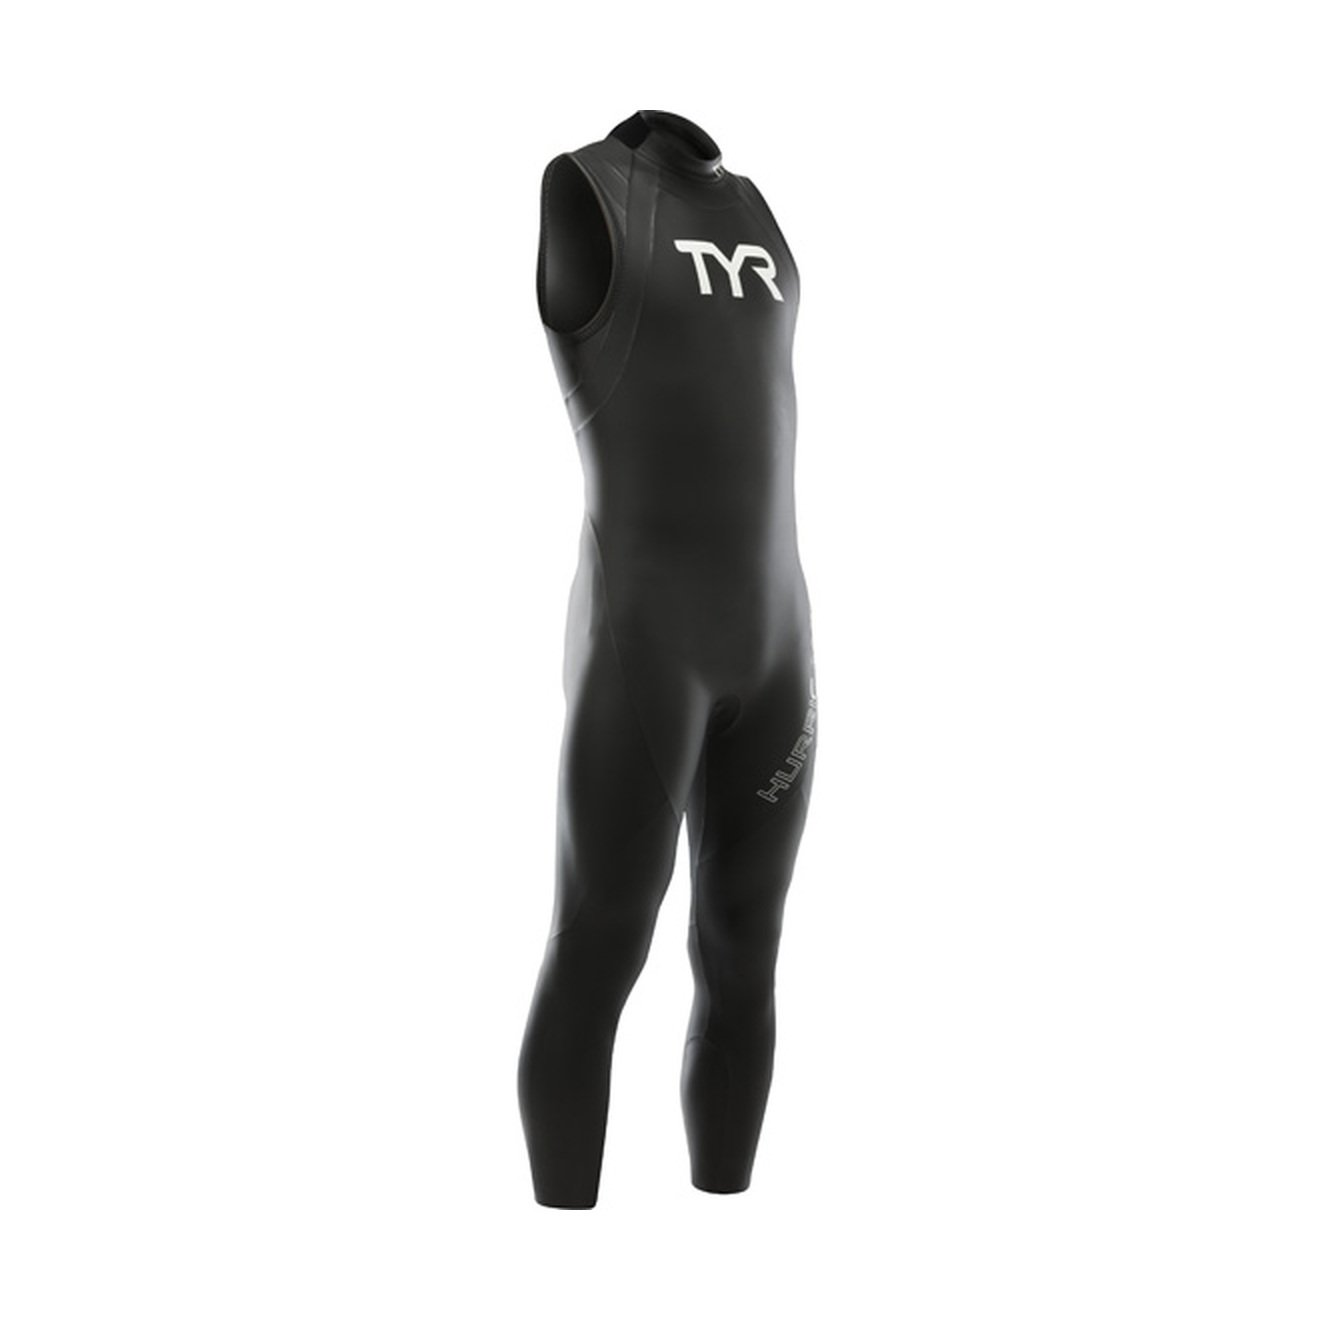 TYR Men's Hurricane Sleeveless Wetsuit Category 1, Black/White, XX-Large by TYR